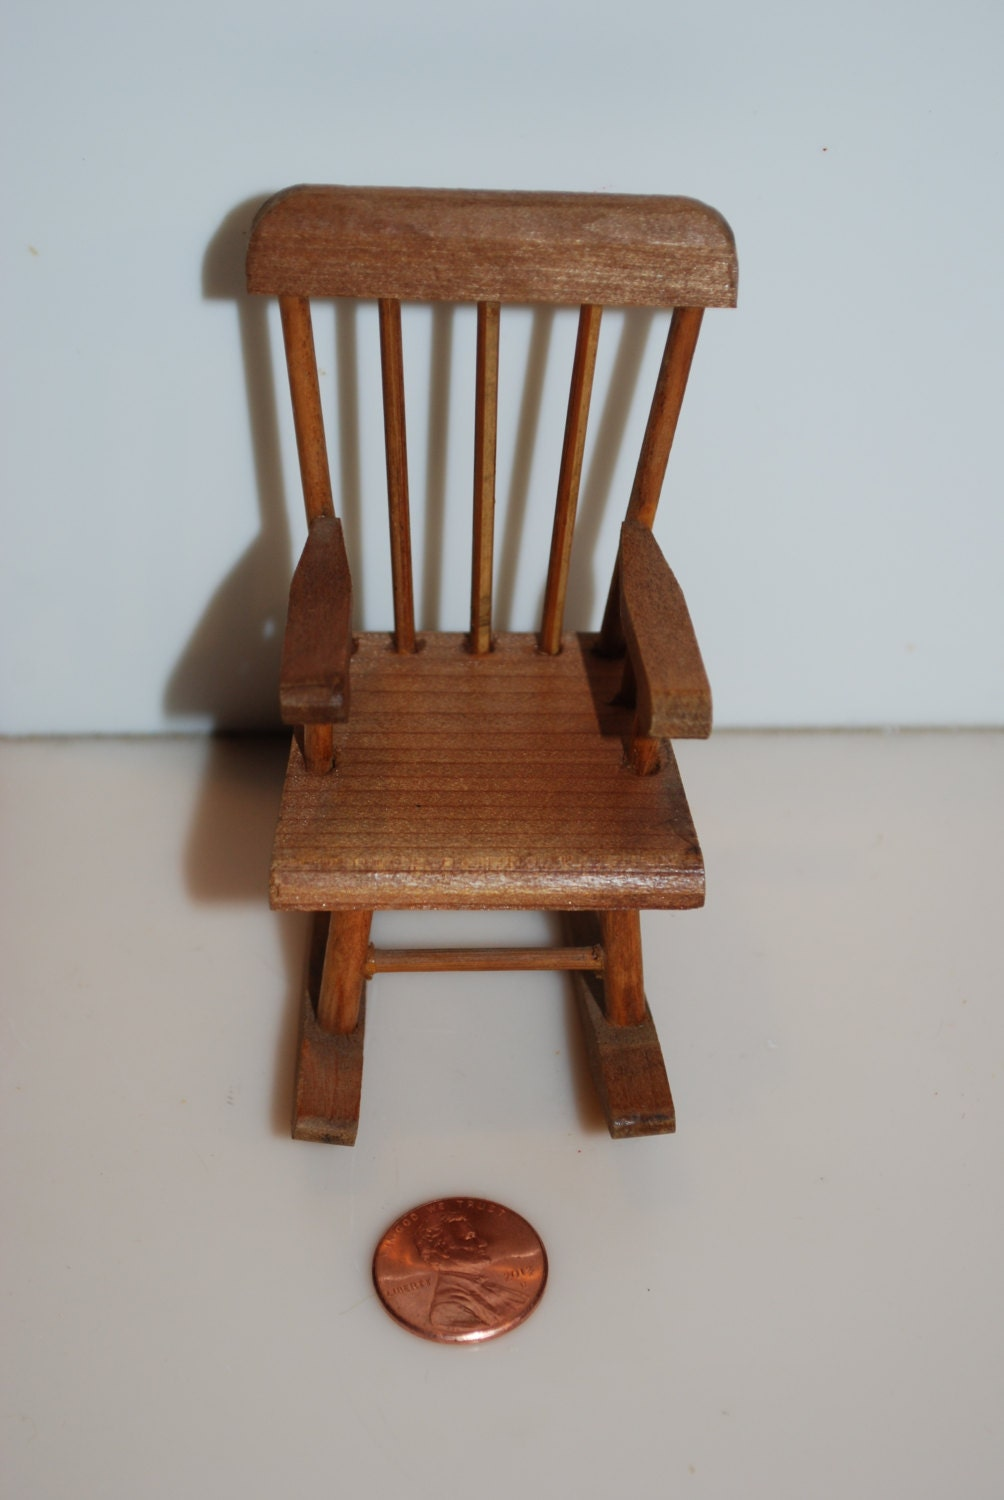 Dollhouse Shackman Wood Wooden Rocking Chair Vintage Miniature Furniture 3 Haute Juice